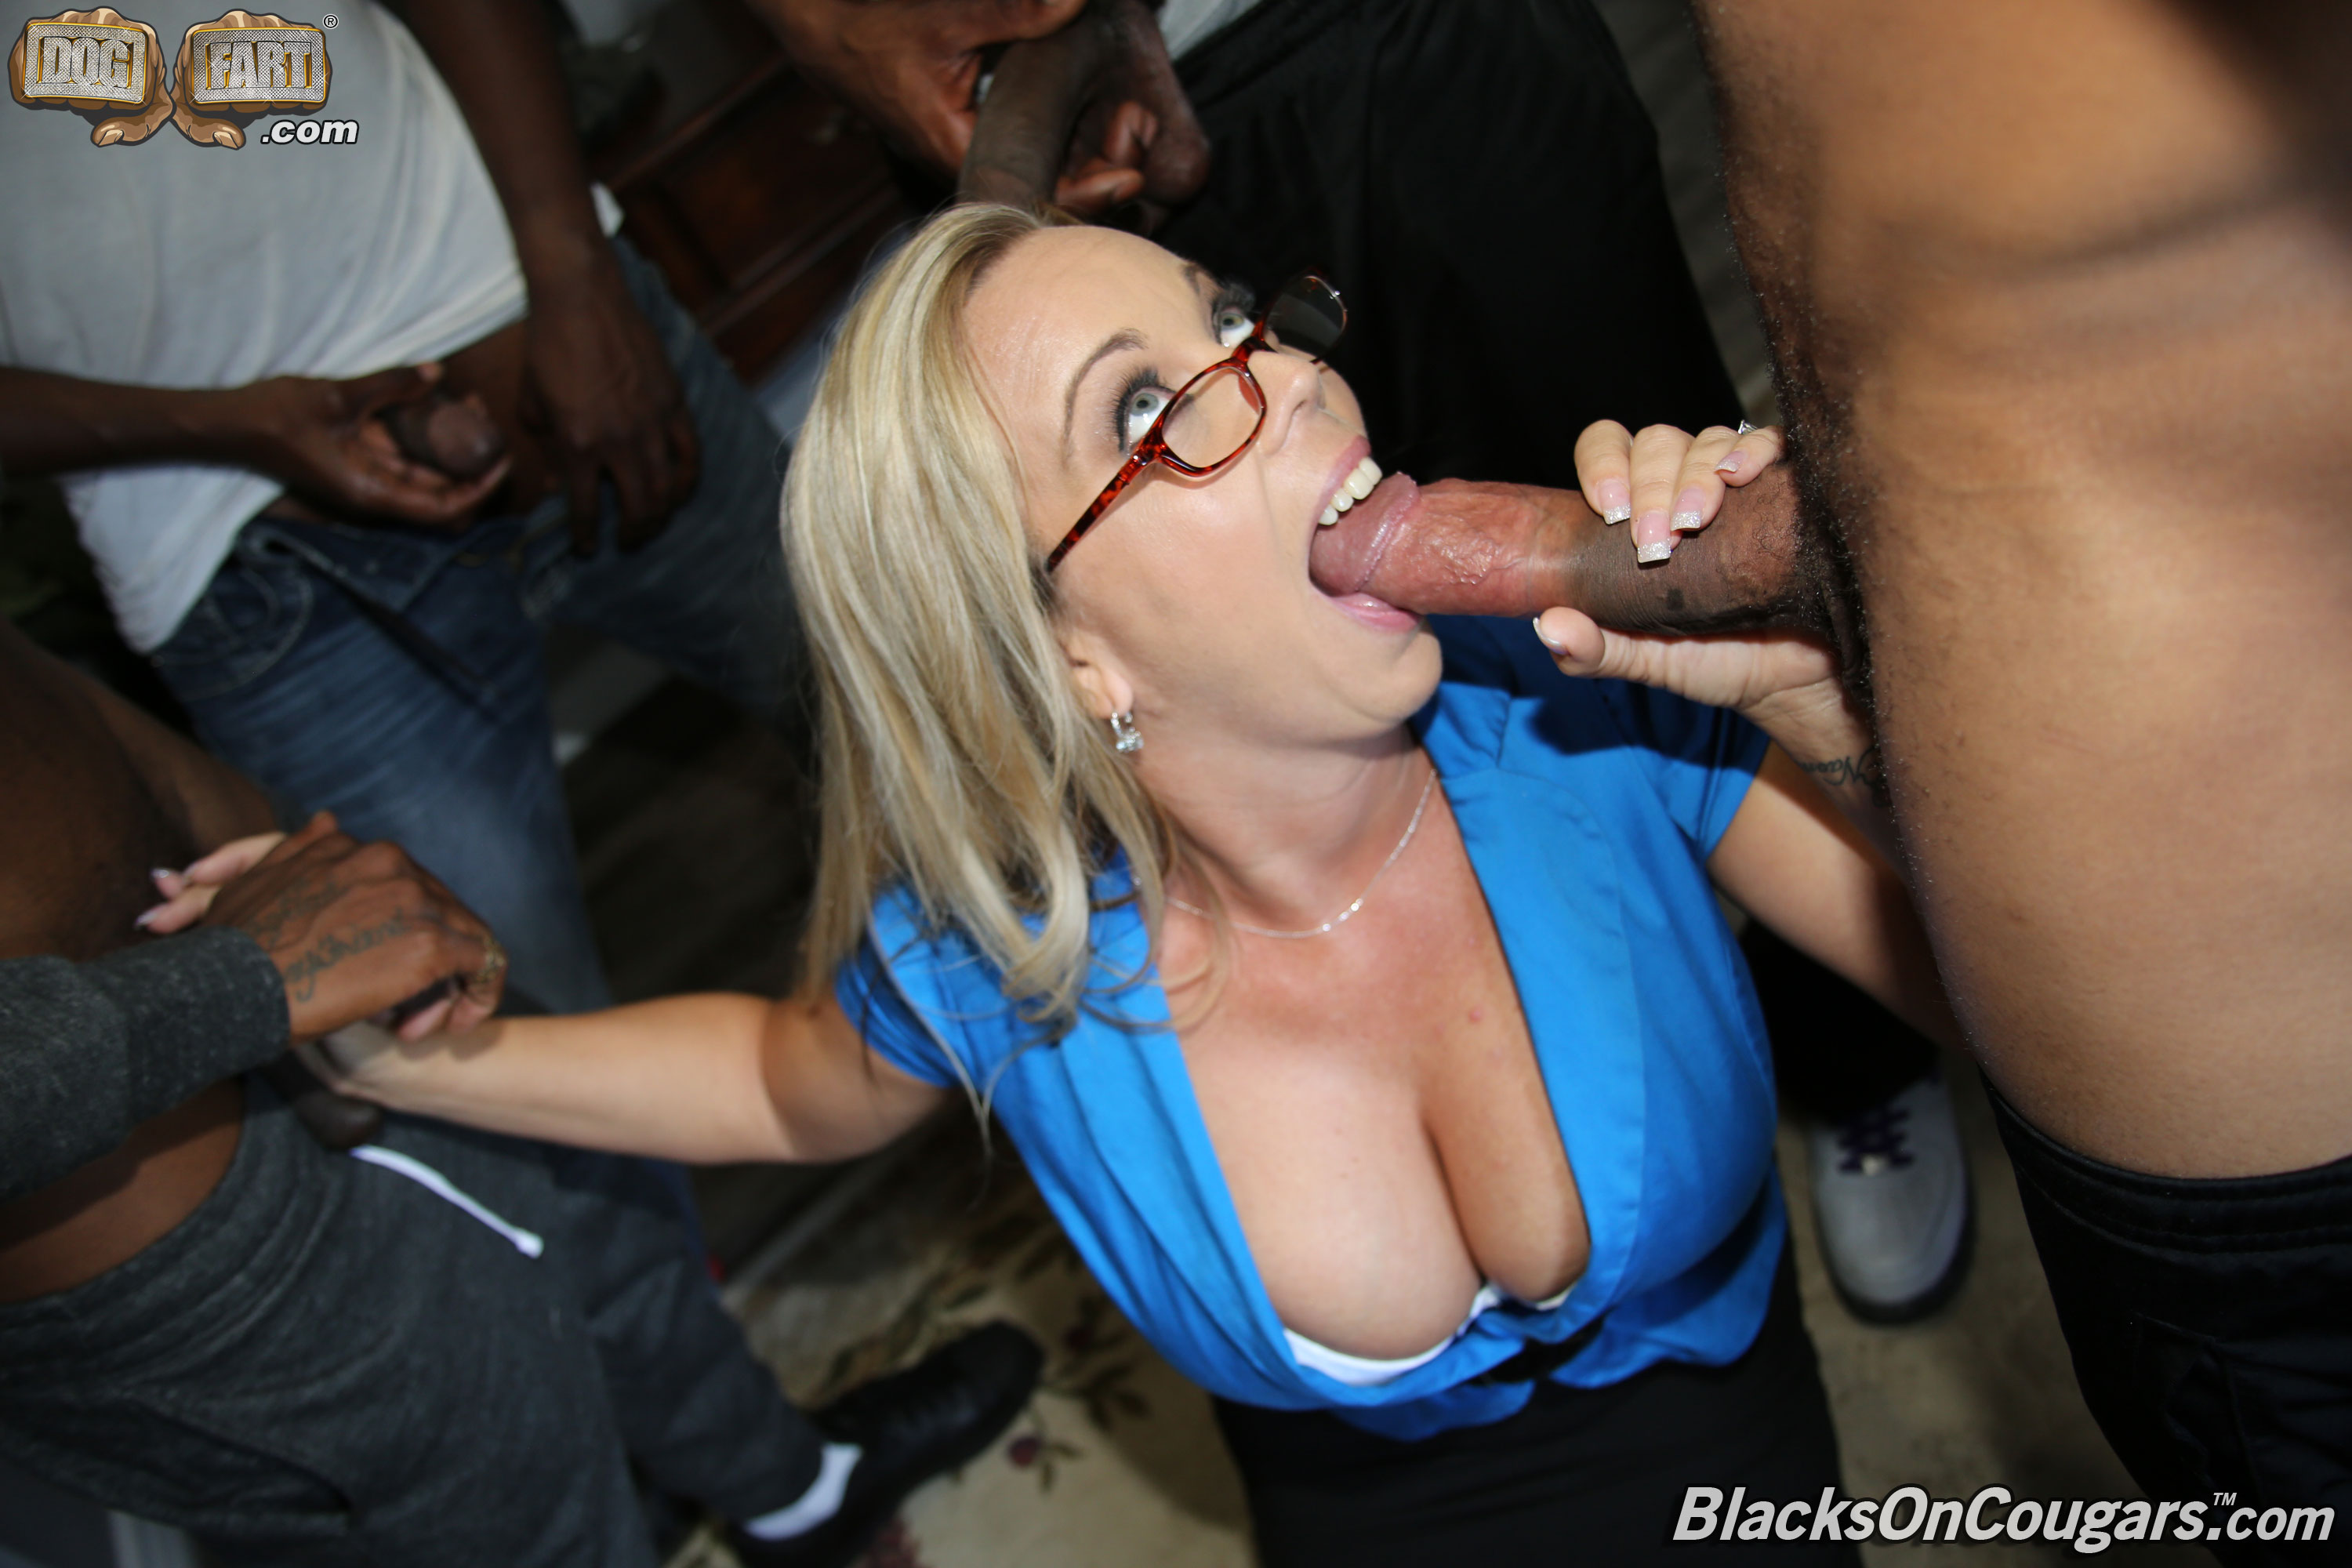 galleries blacksoncougars content amber lynn bach 2 pic 05